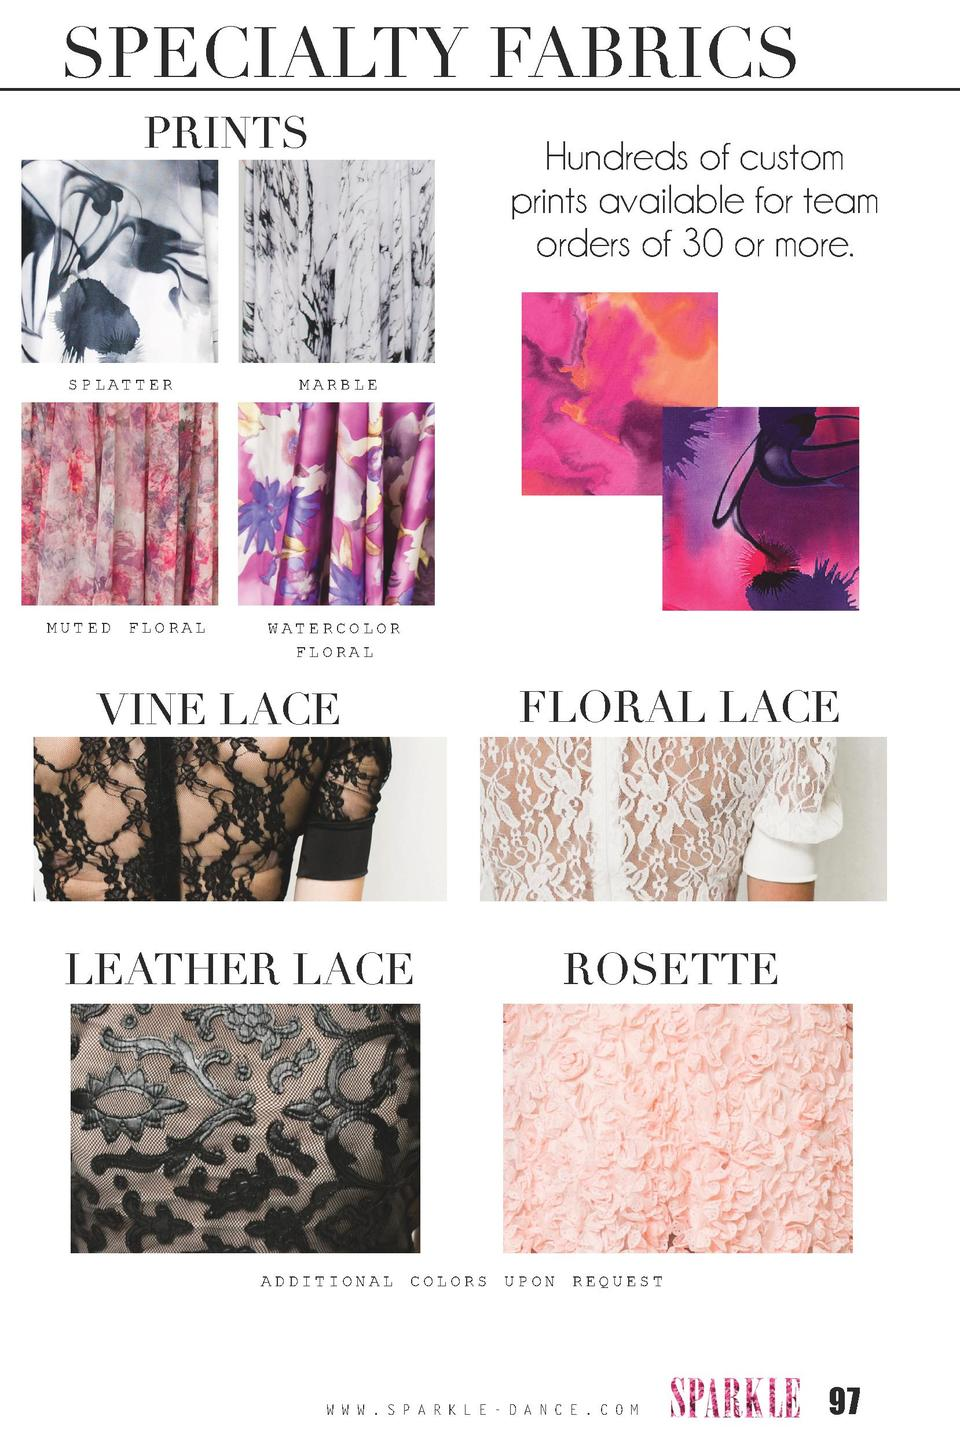 SPECIALTY FABRICS PRINTS  SPLATTER  MUTED FLORAL  Hundreds of custom prints available for team orders of 30 or more.  MARB...